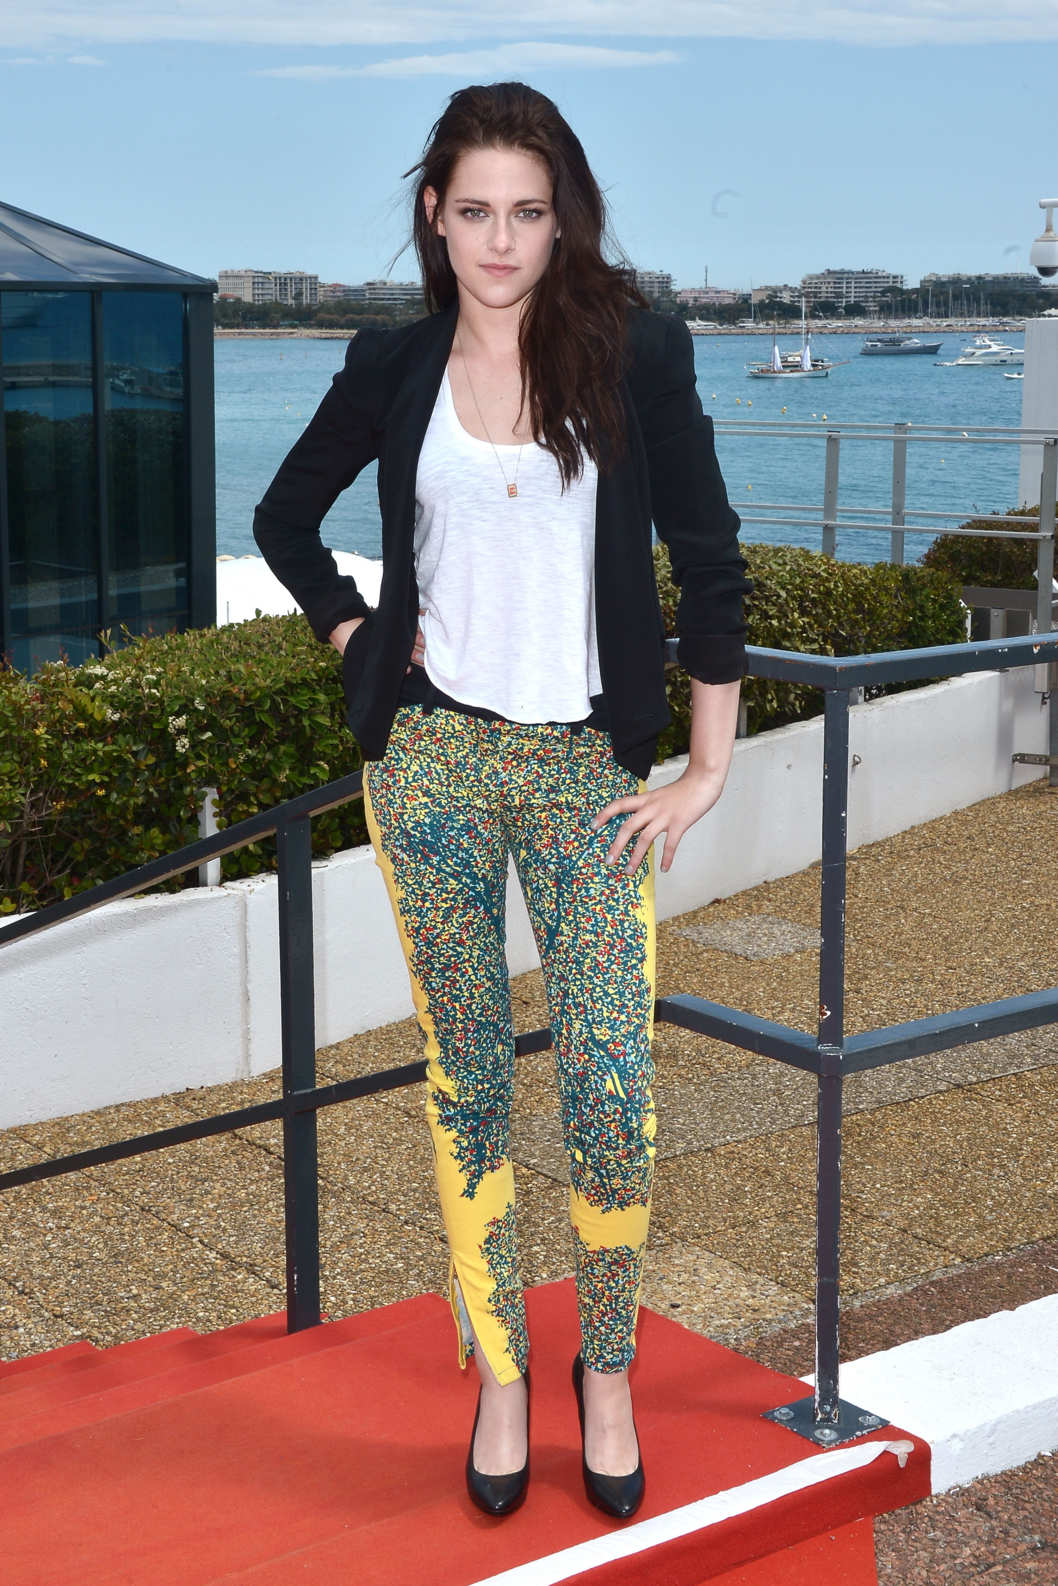 CANNES, FRANCE - MAY 23:  Actress Kristen Stewart is sighted during the 65th Cannes Film Festival 2012 at Palais des Festival on May 23, 2012 in Cannes, France.  (Photo by George Pimentel/WireImage)